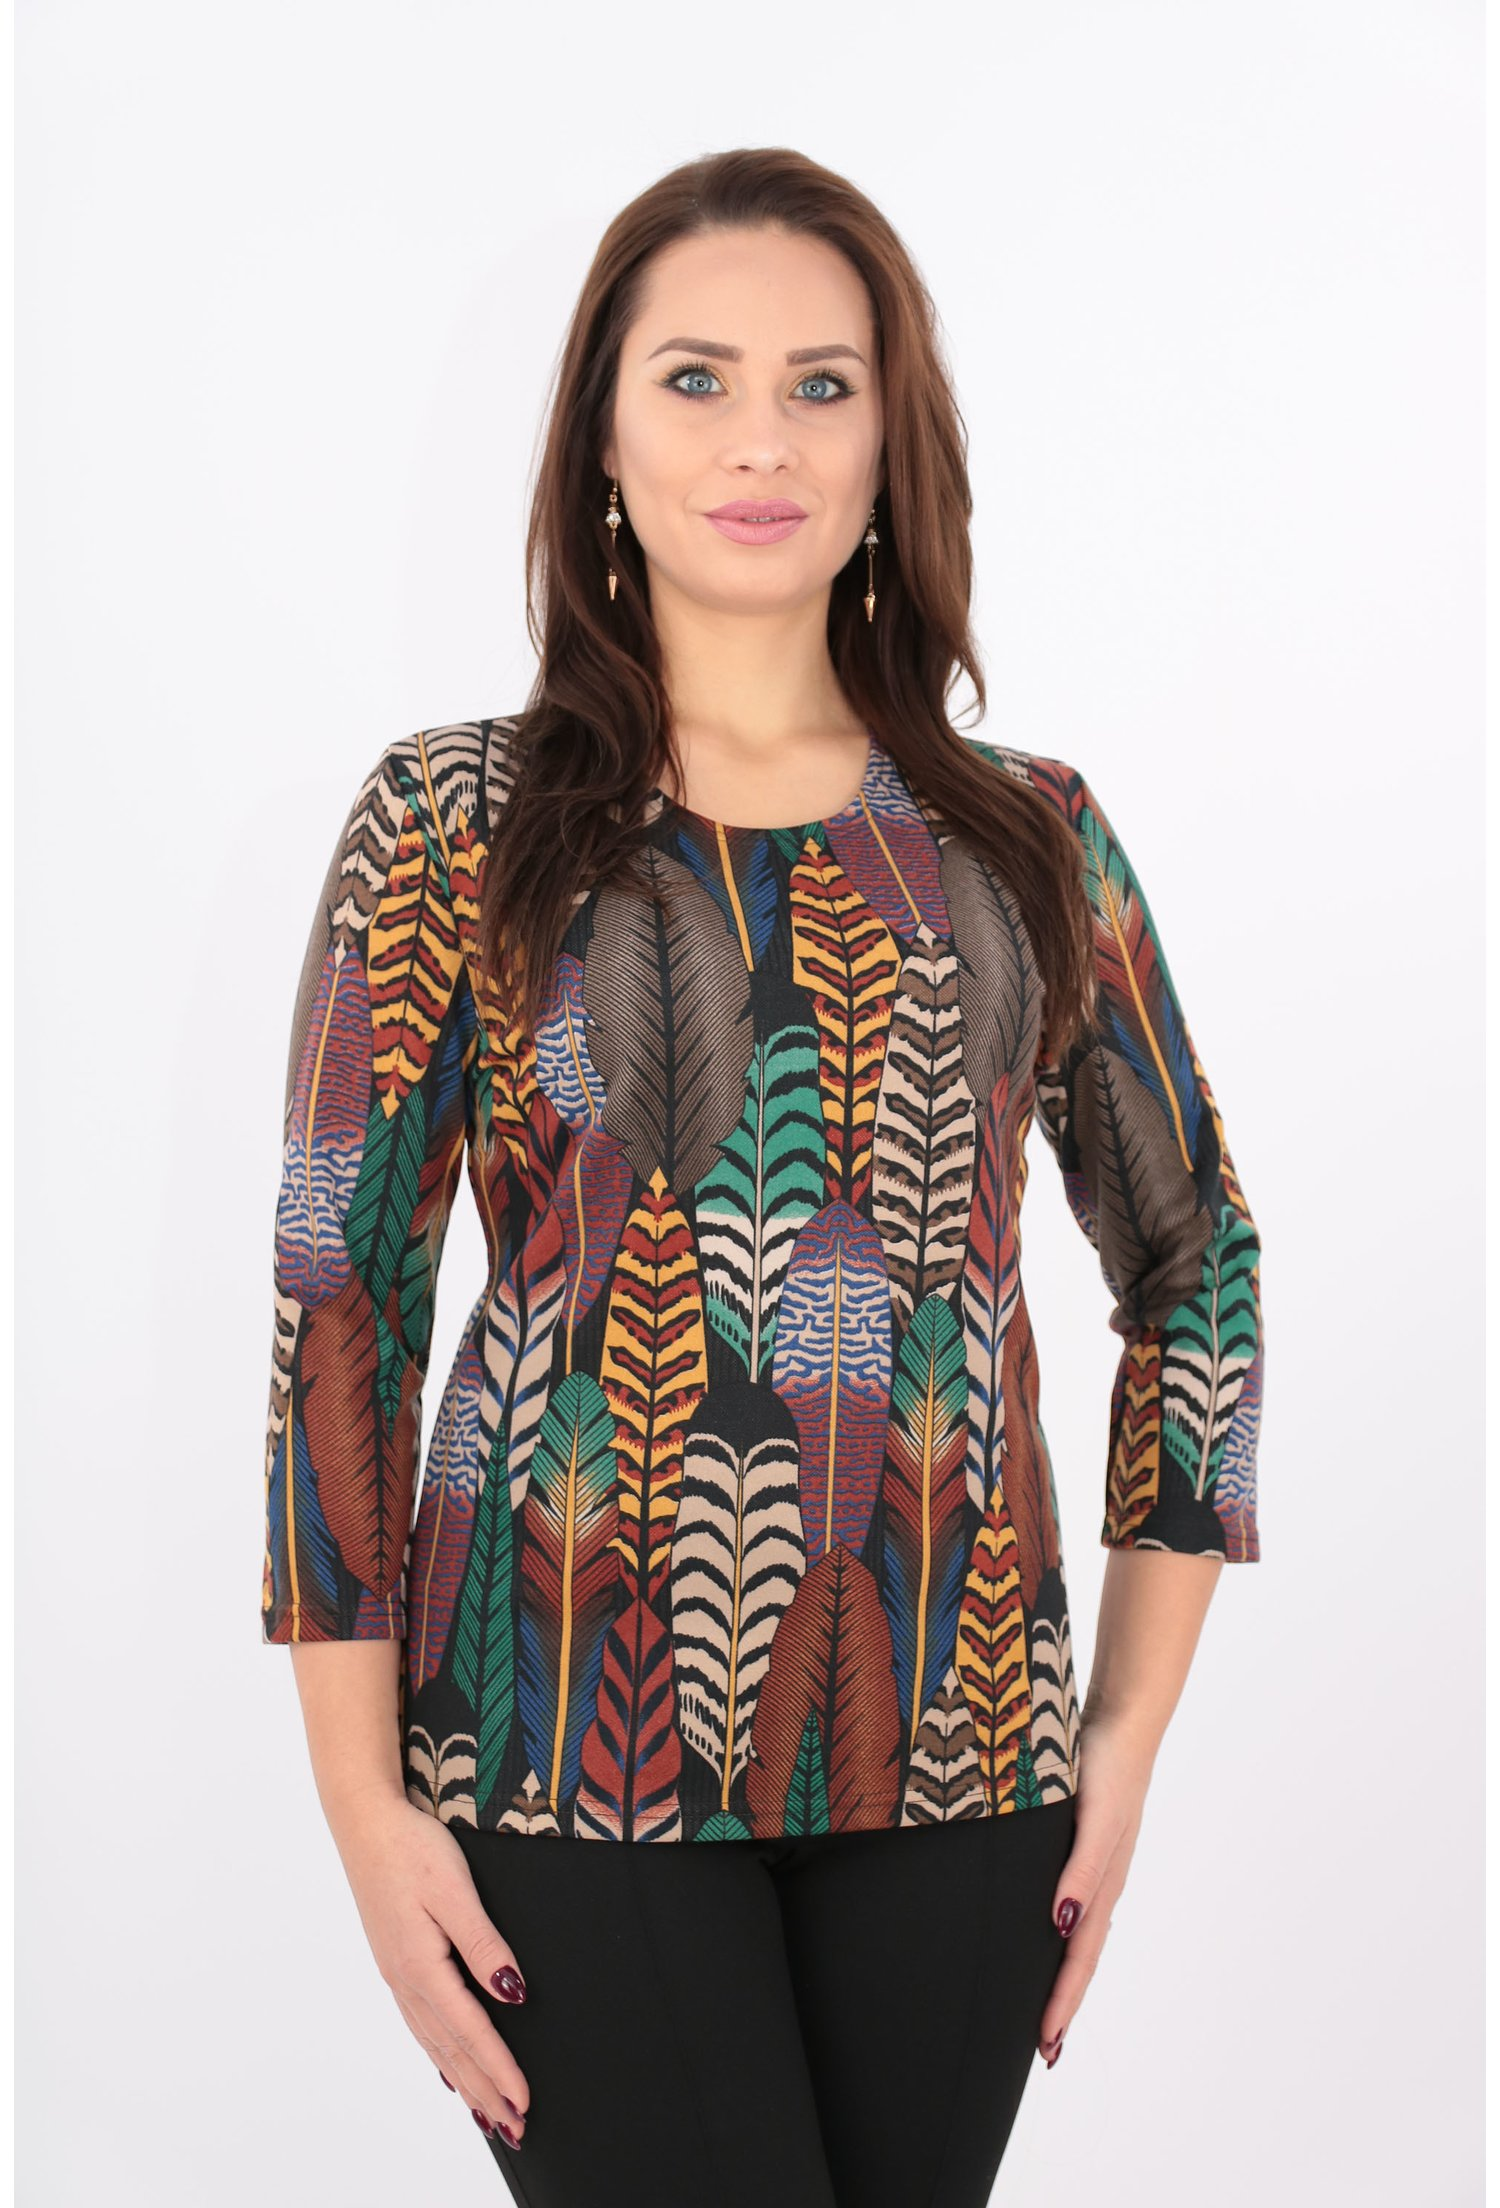 Imagine Bluza Din Jerse Cu Print Frunze Multicolore